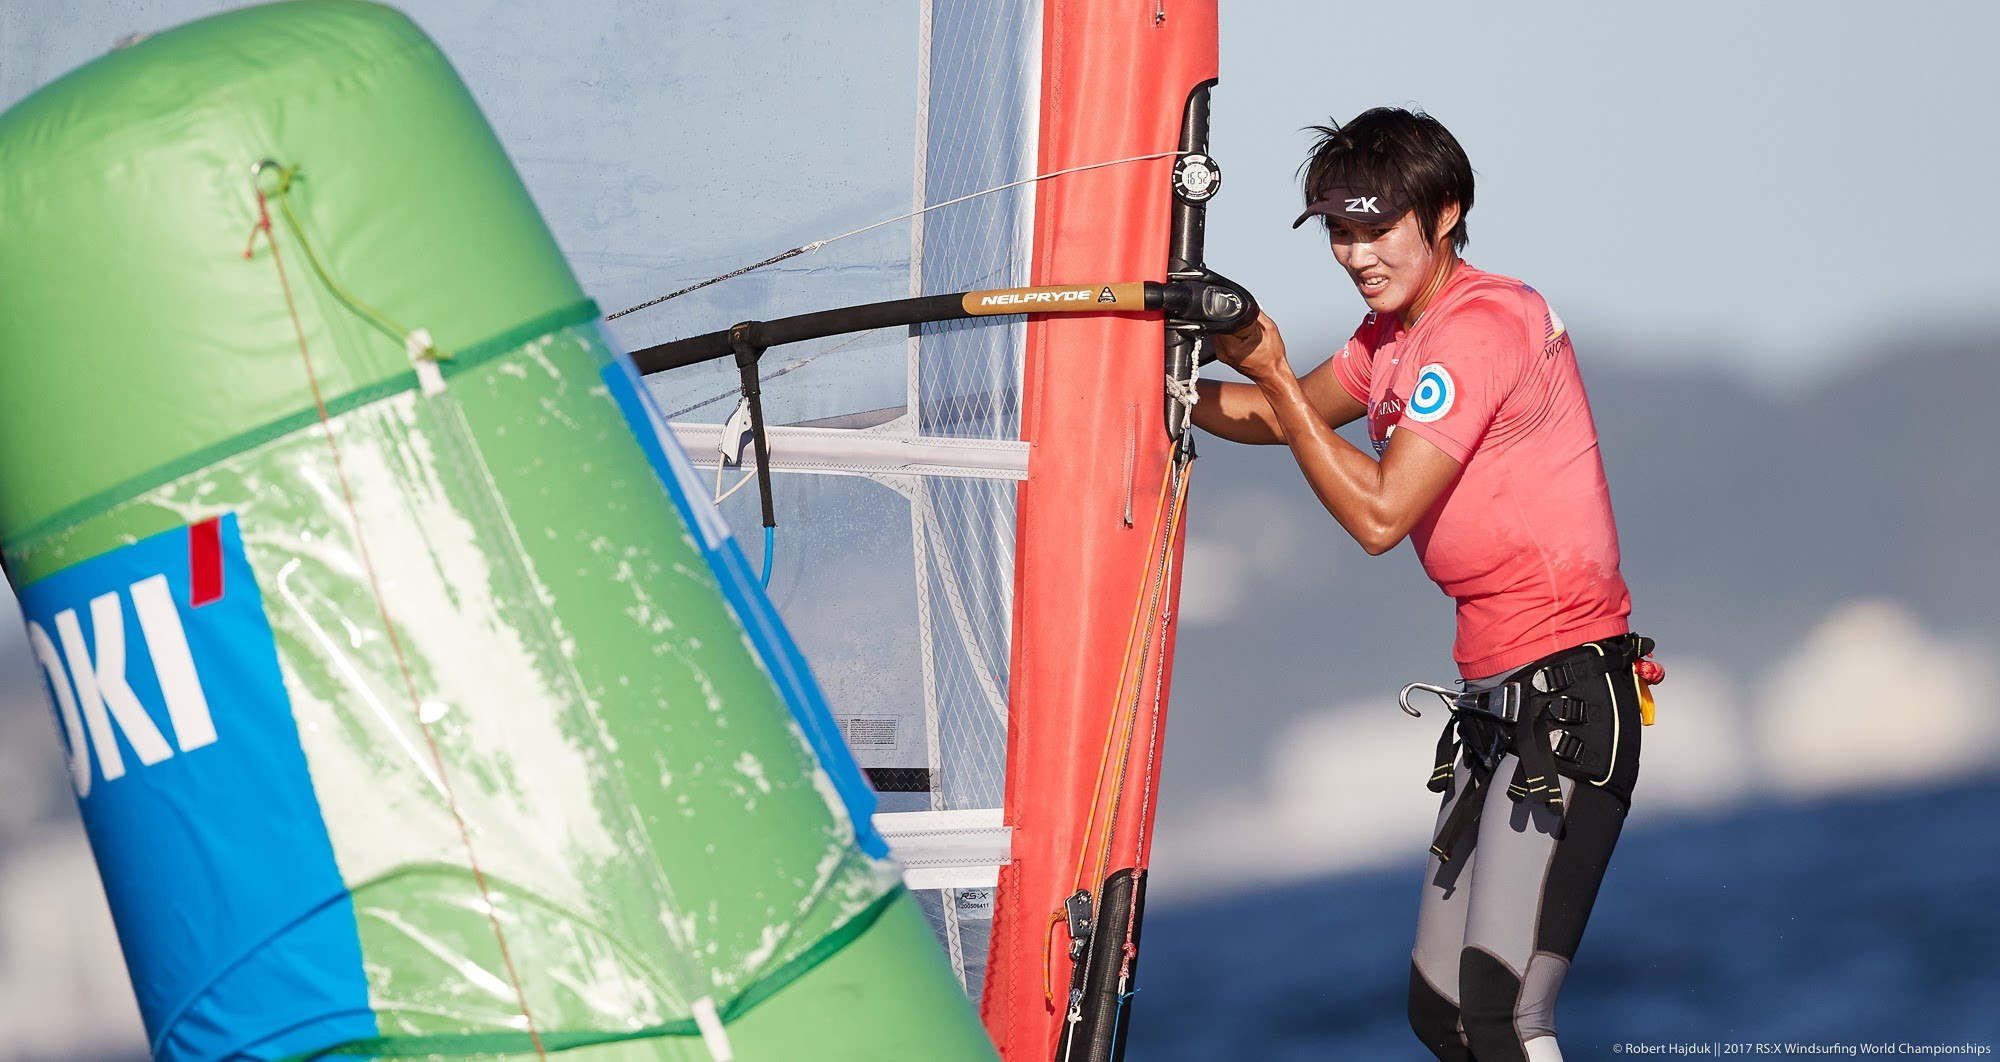 Chen poised for gold at RS:X Windsurfing World Championships as Ye and Sanz Lanz contest men's title